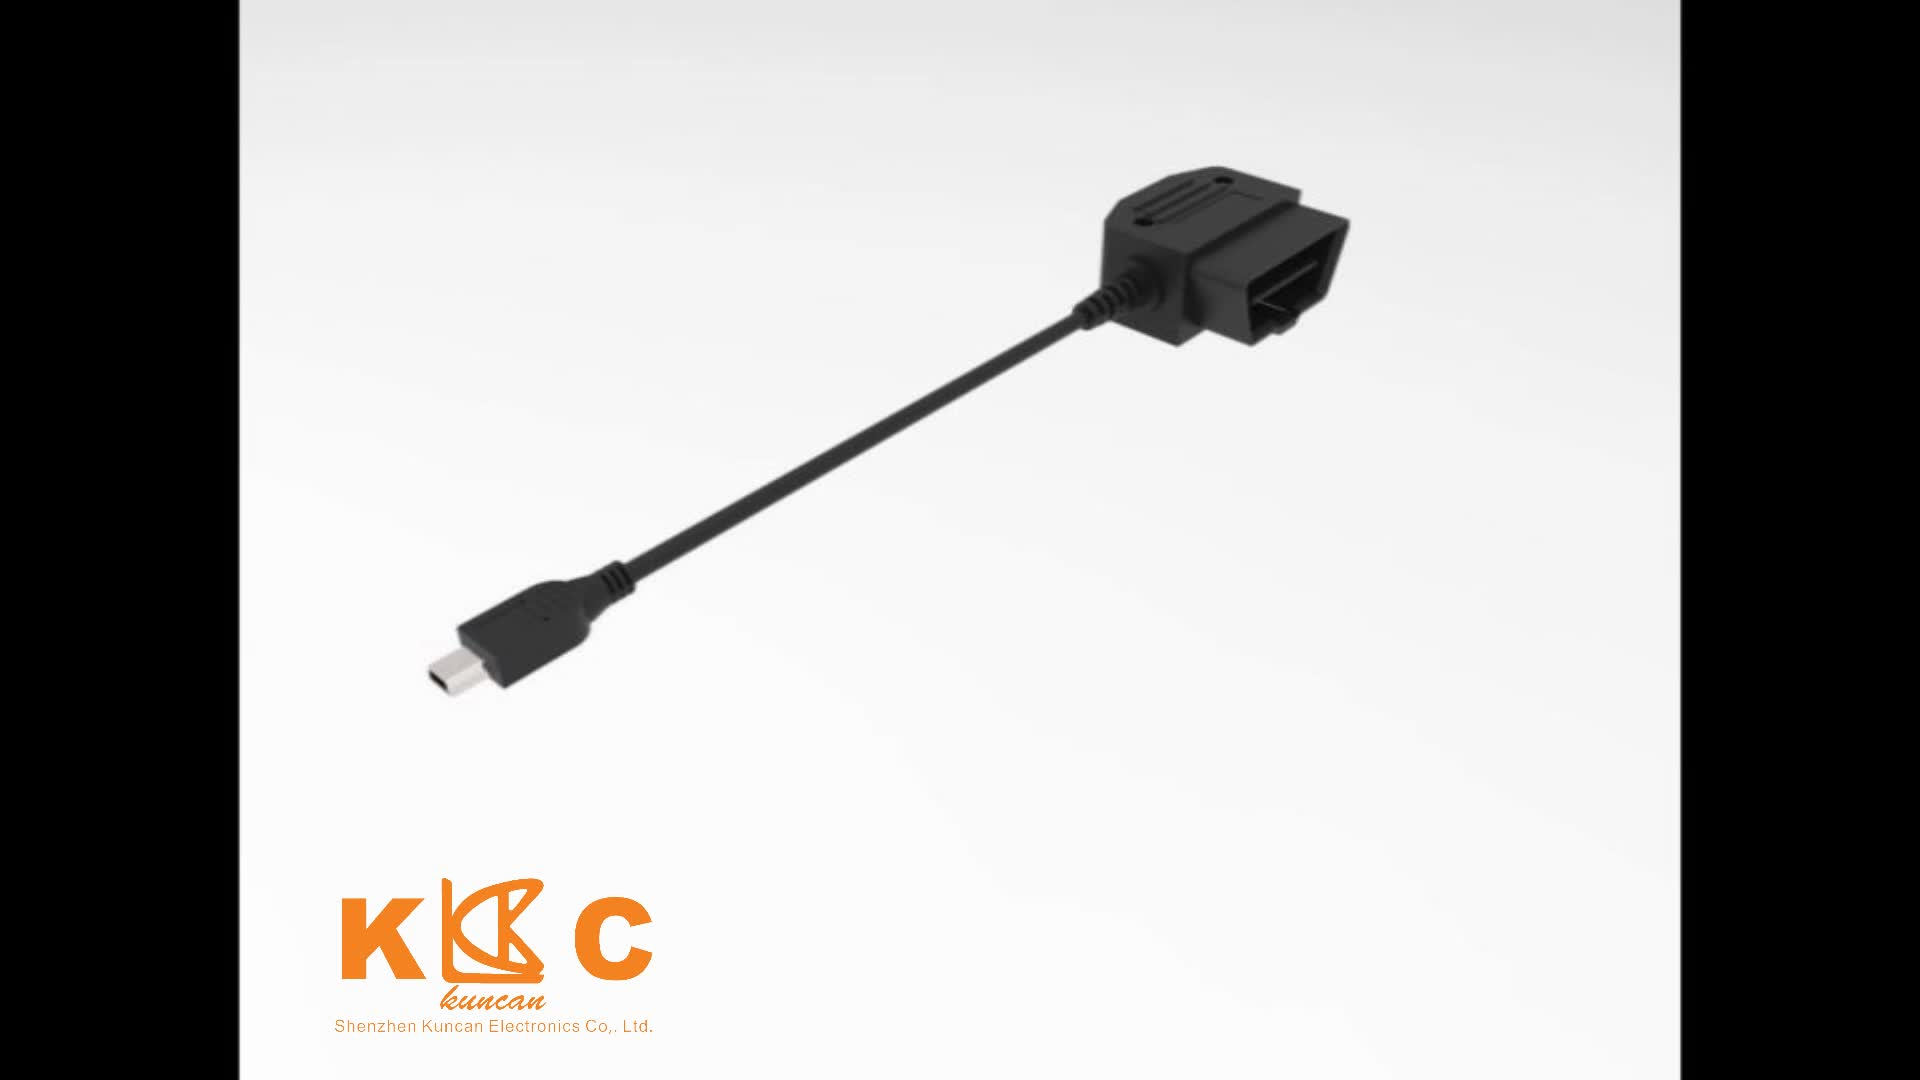 16Pin OBD ii to DC Connector for OBD II Tools